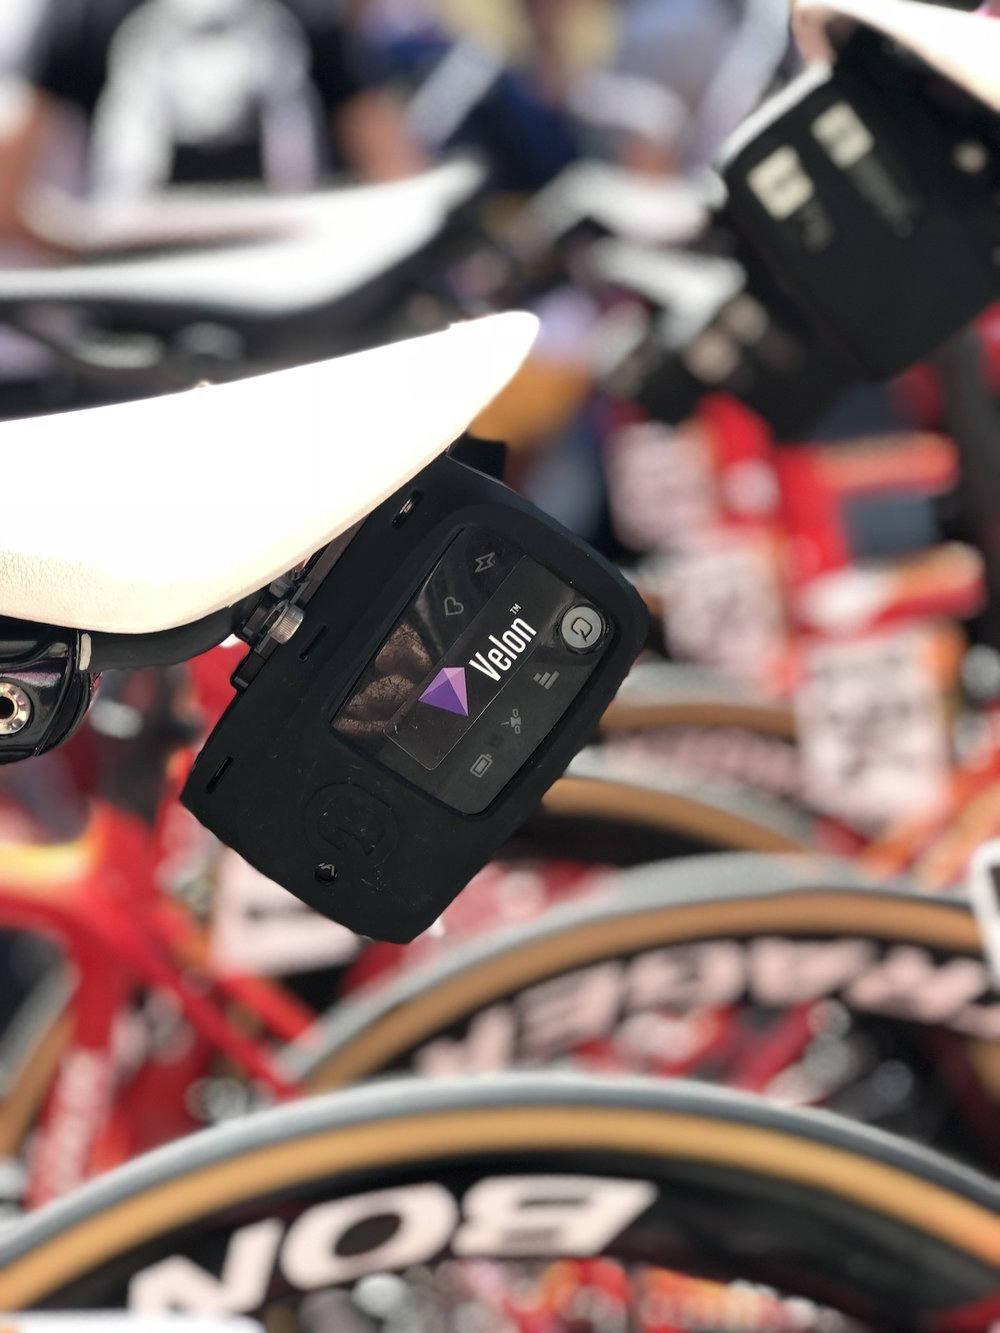 Tracking devices send live data during races